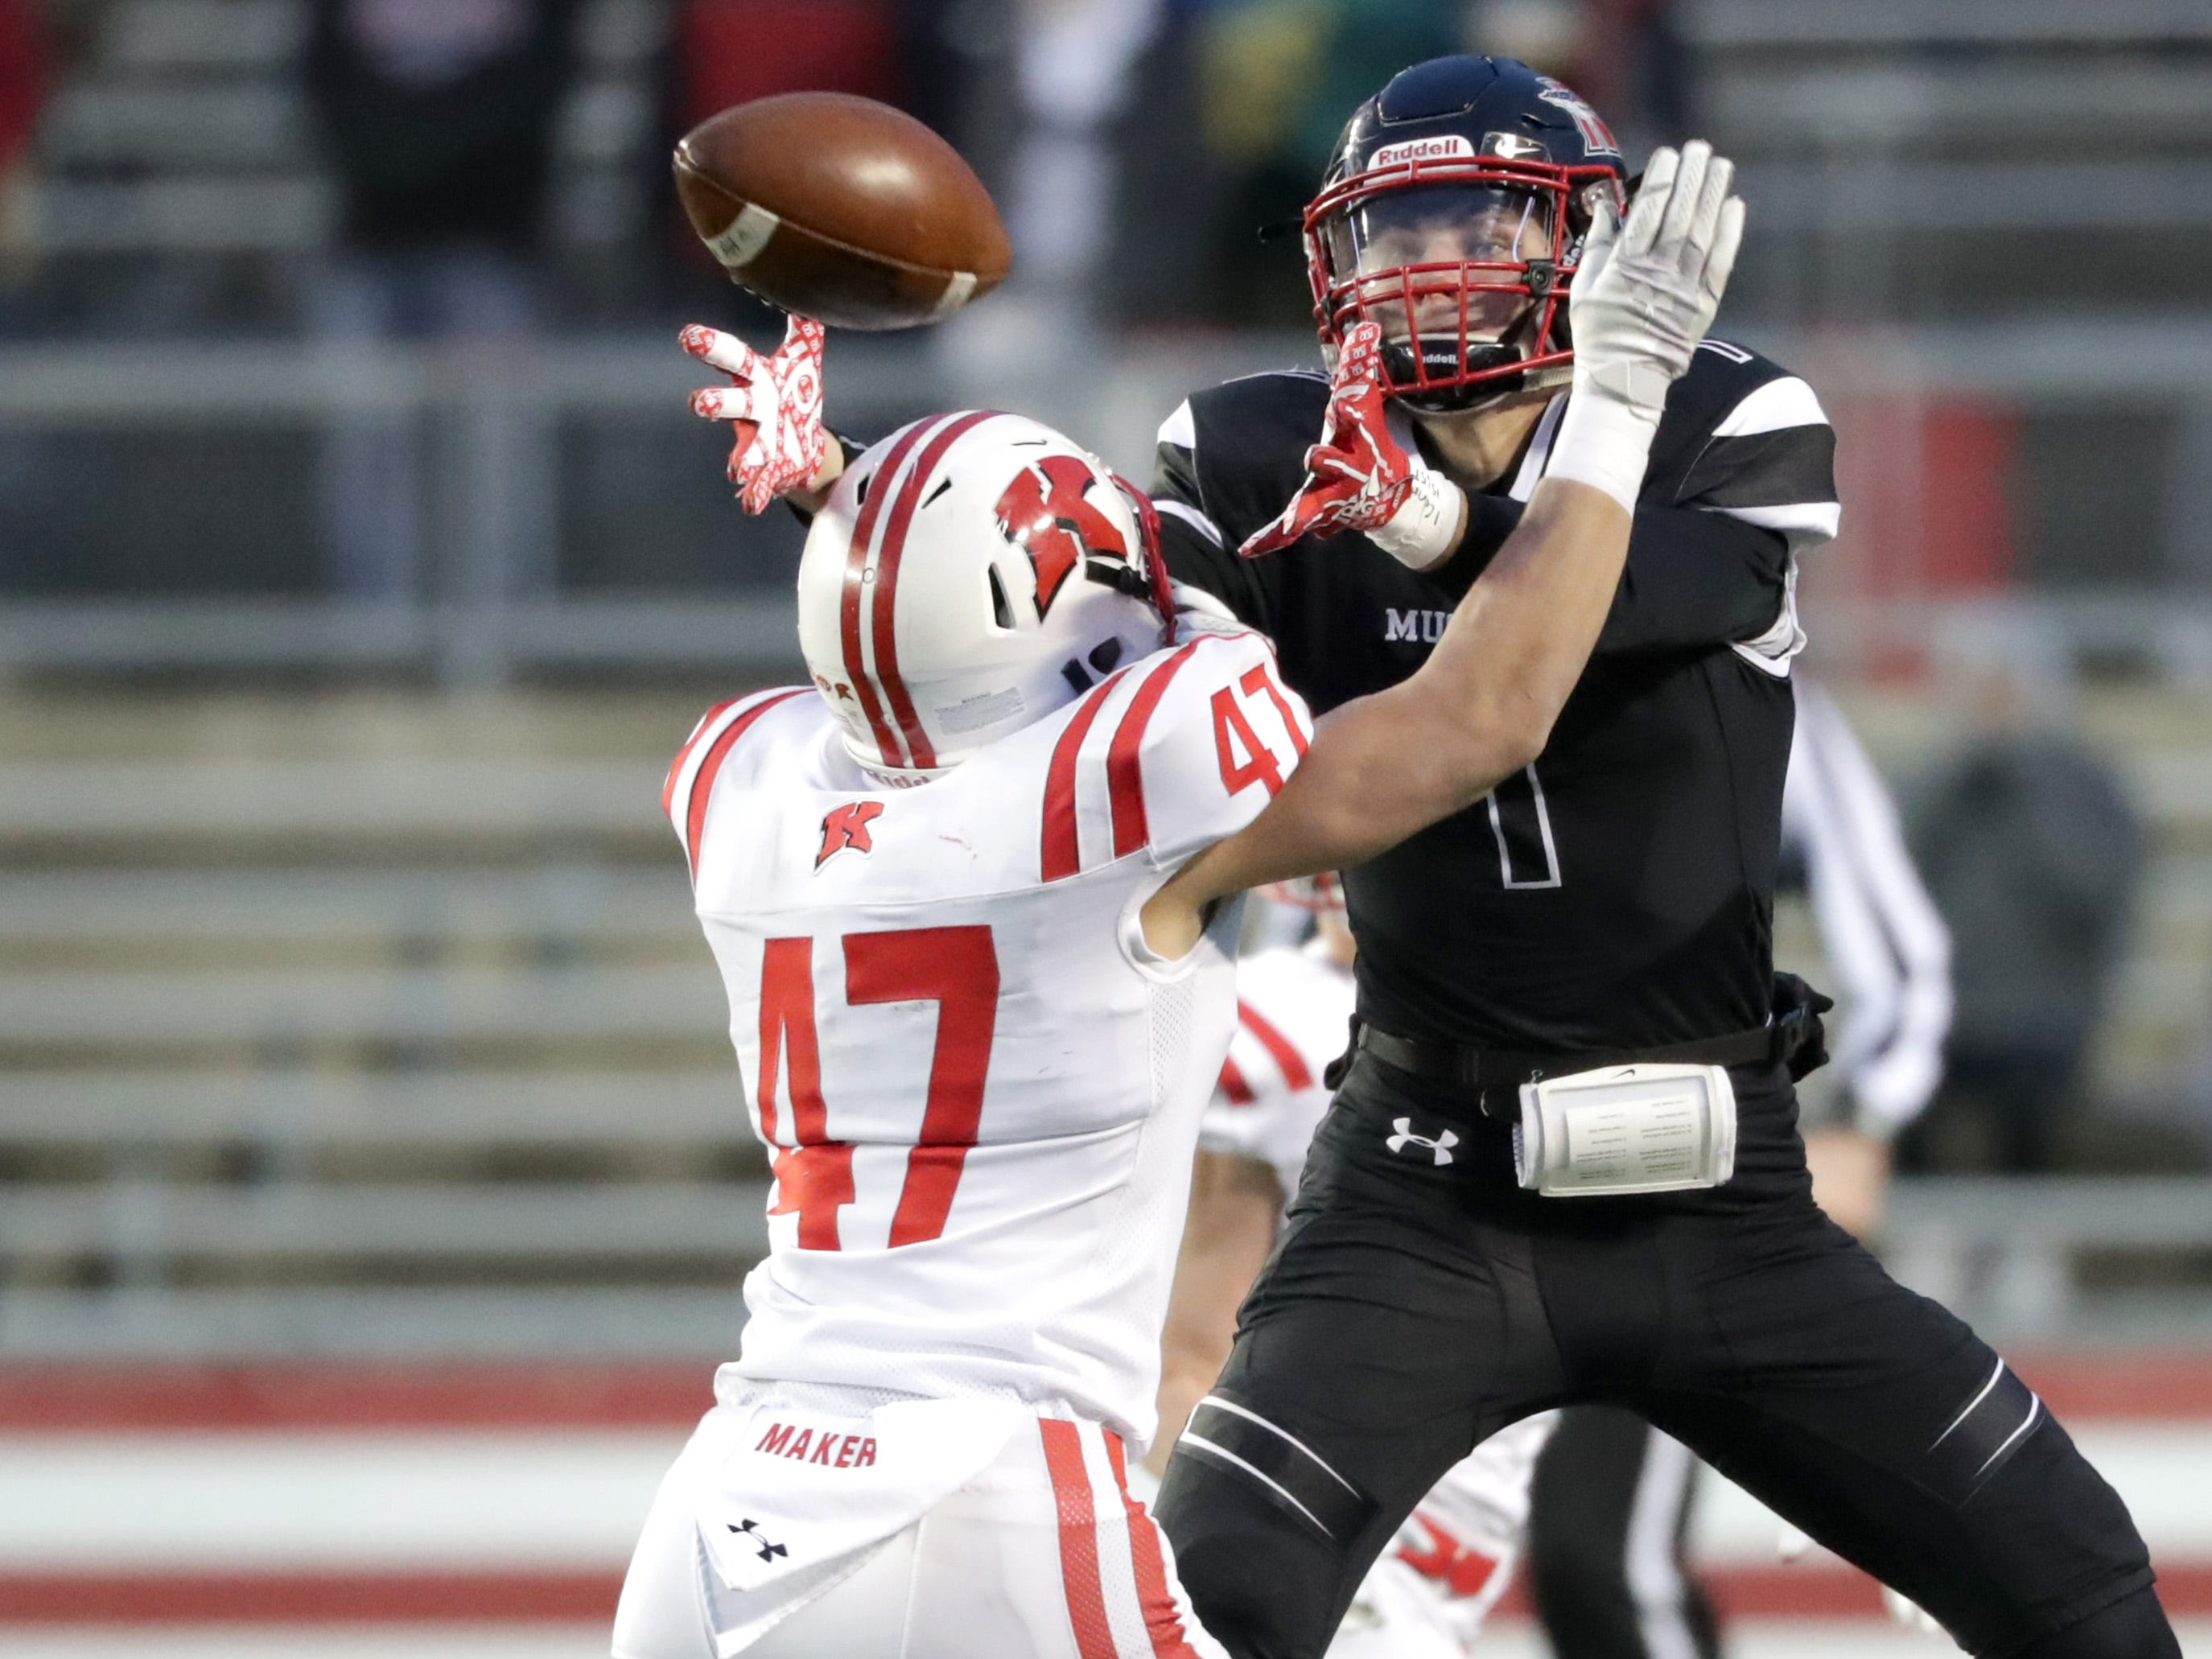 Kimberly High School's #47 Tristan Argall breaks up a pass intended for Muskego High School's #1 Steven Jamroziak during the WIAA Division 1 state championship football game on Friday, November 16, 2018, at Camp Randall in Madison, Wis.